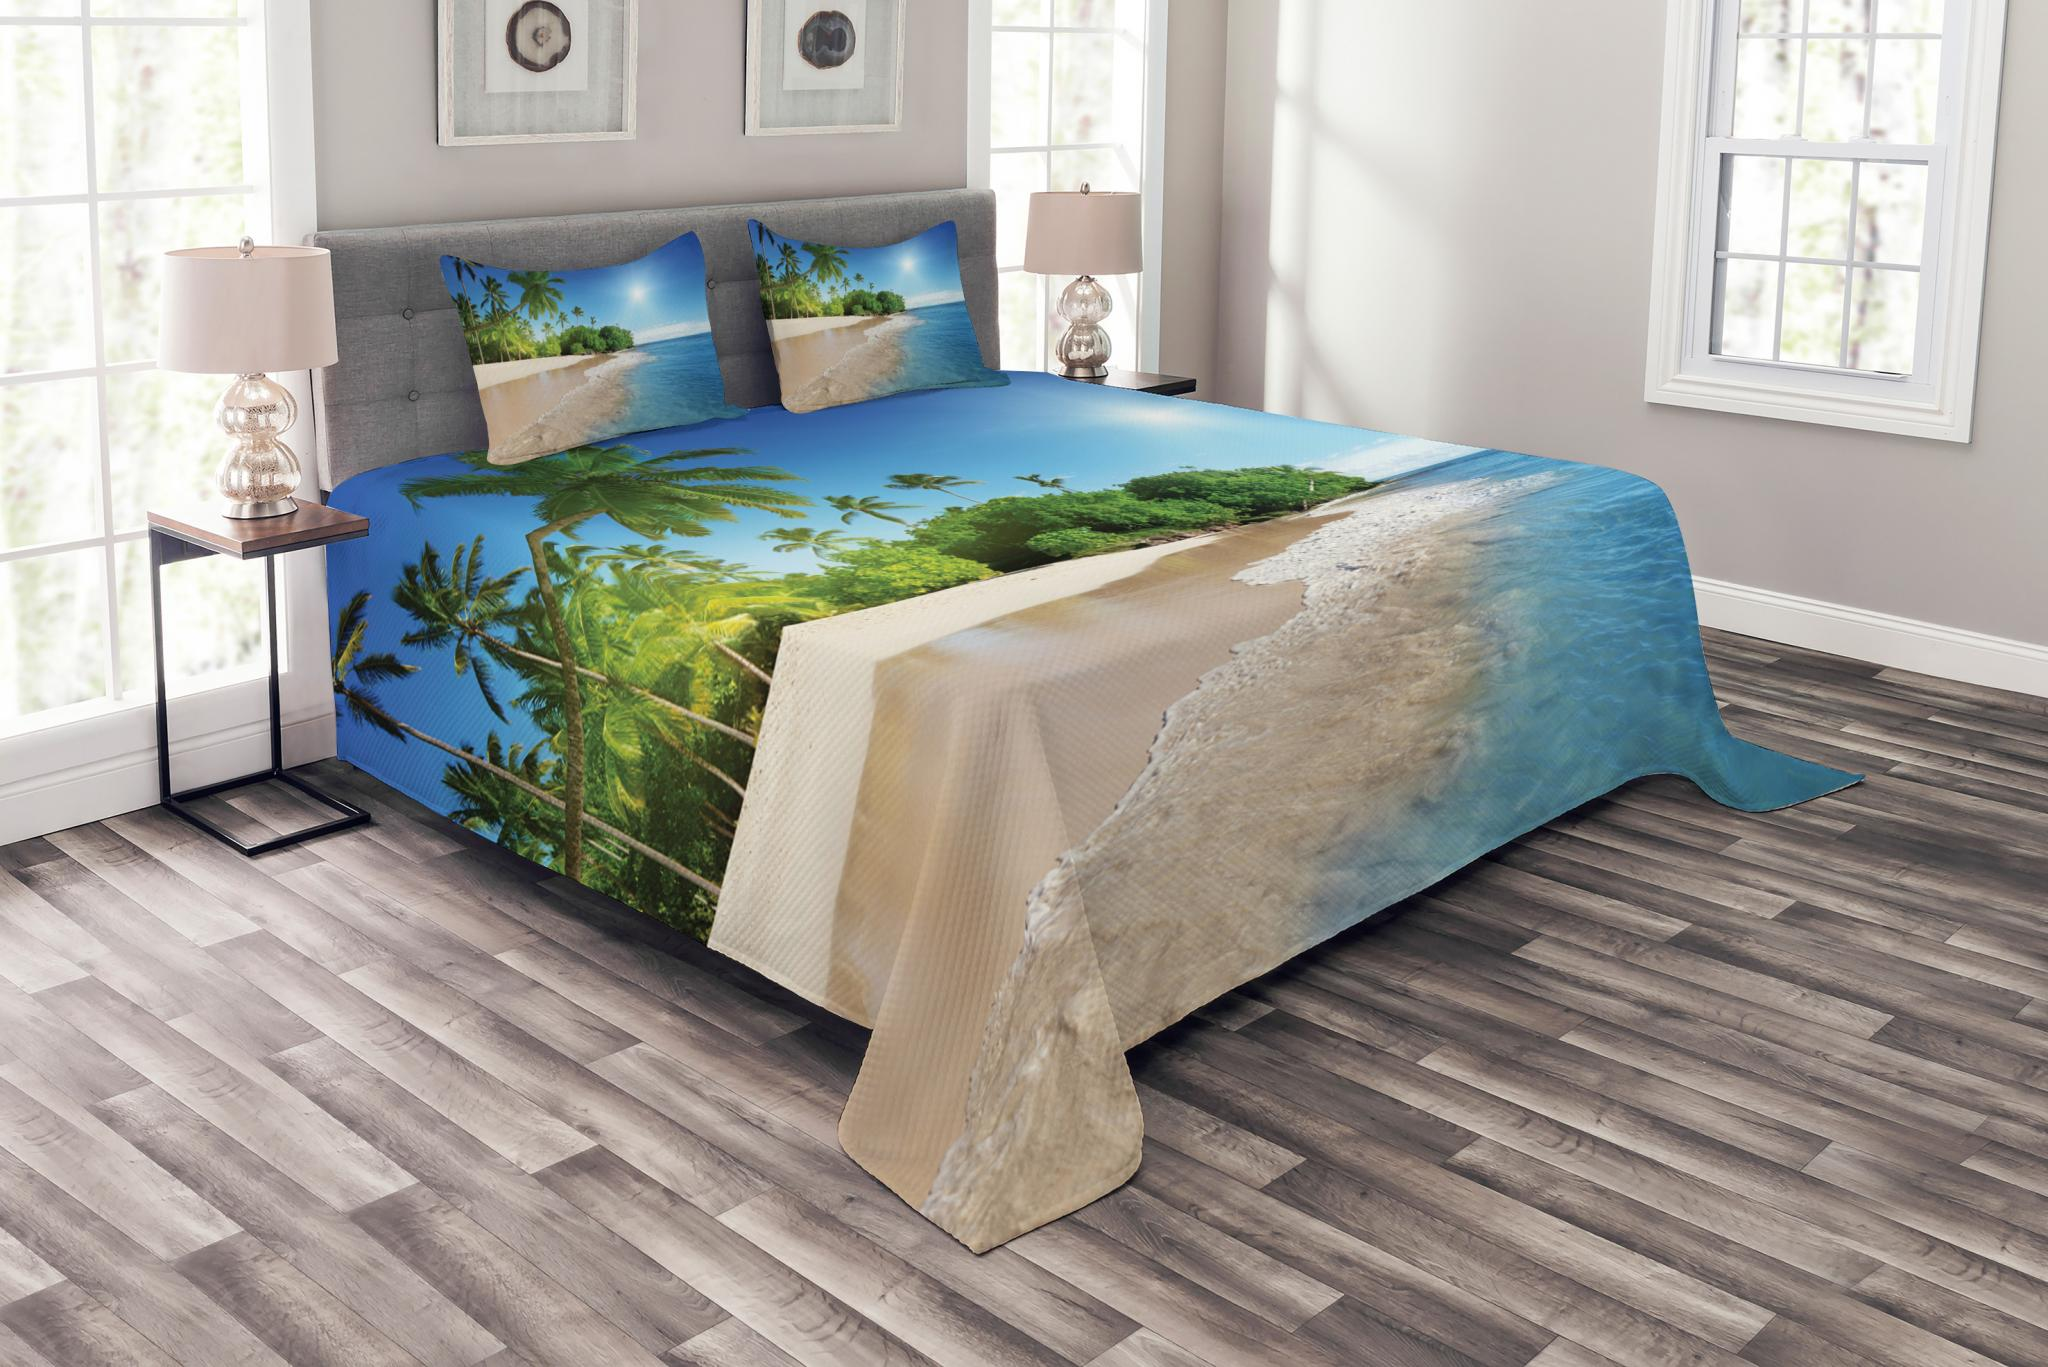 Anchor Duvet Cover Set with Pillow Shams Abstract Sea Grunge Worn Print